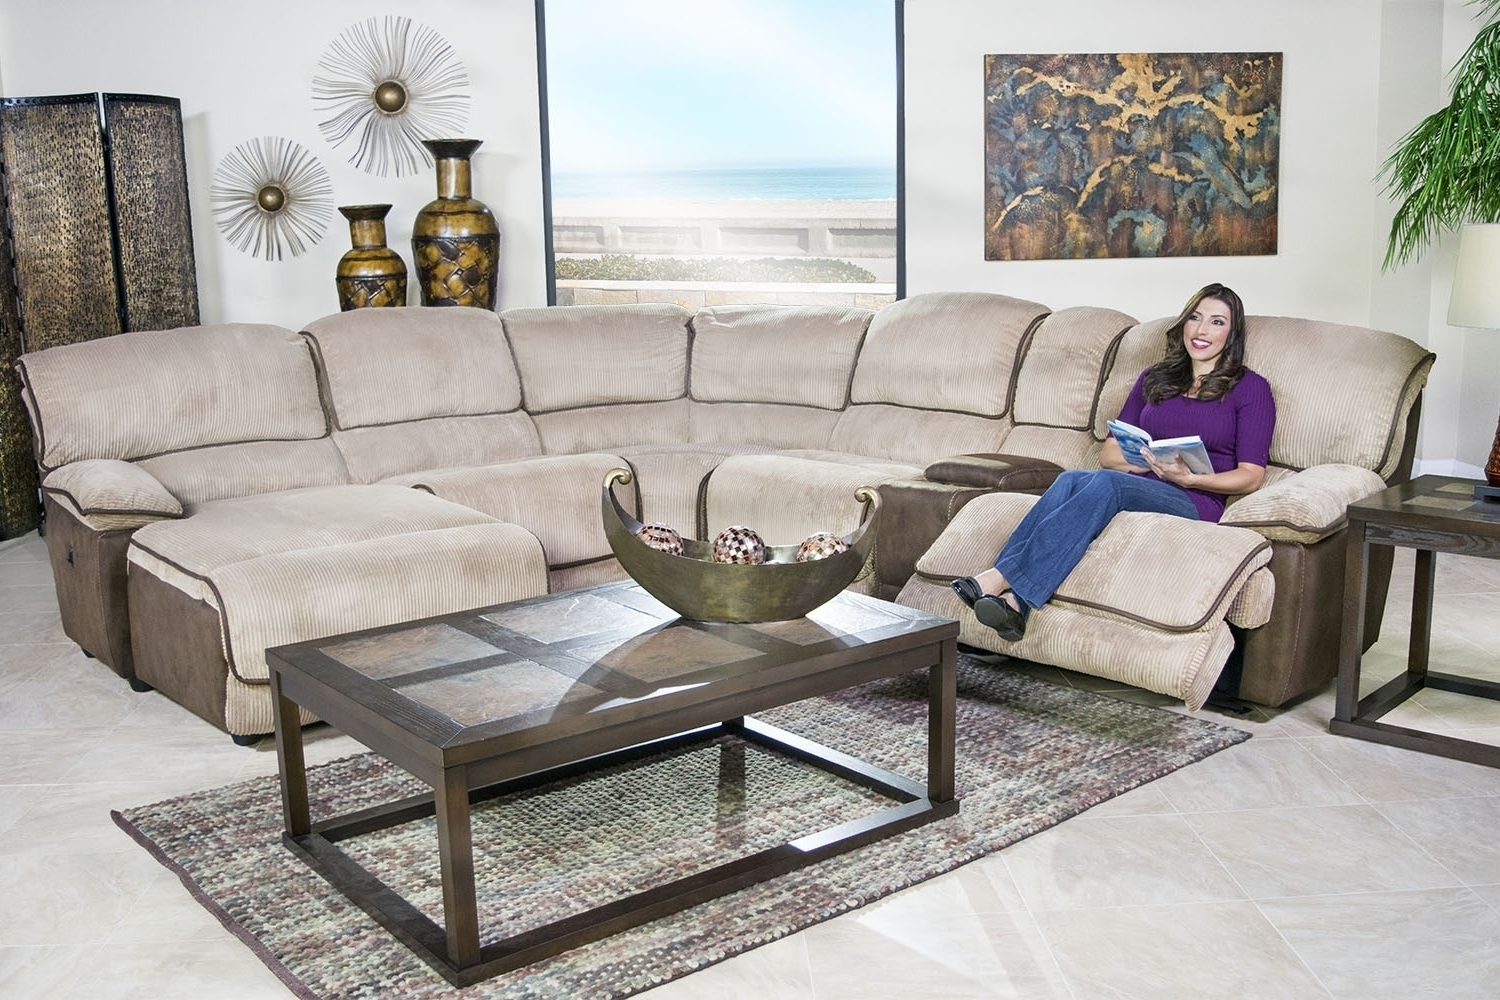 Widely Used Awesome Sectional Sofa Austin – Buildsimplehome In Sectional Sofas At Austin (View 20 of 20)